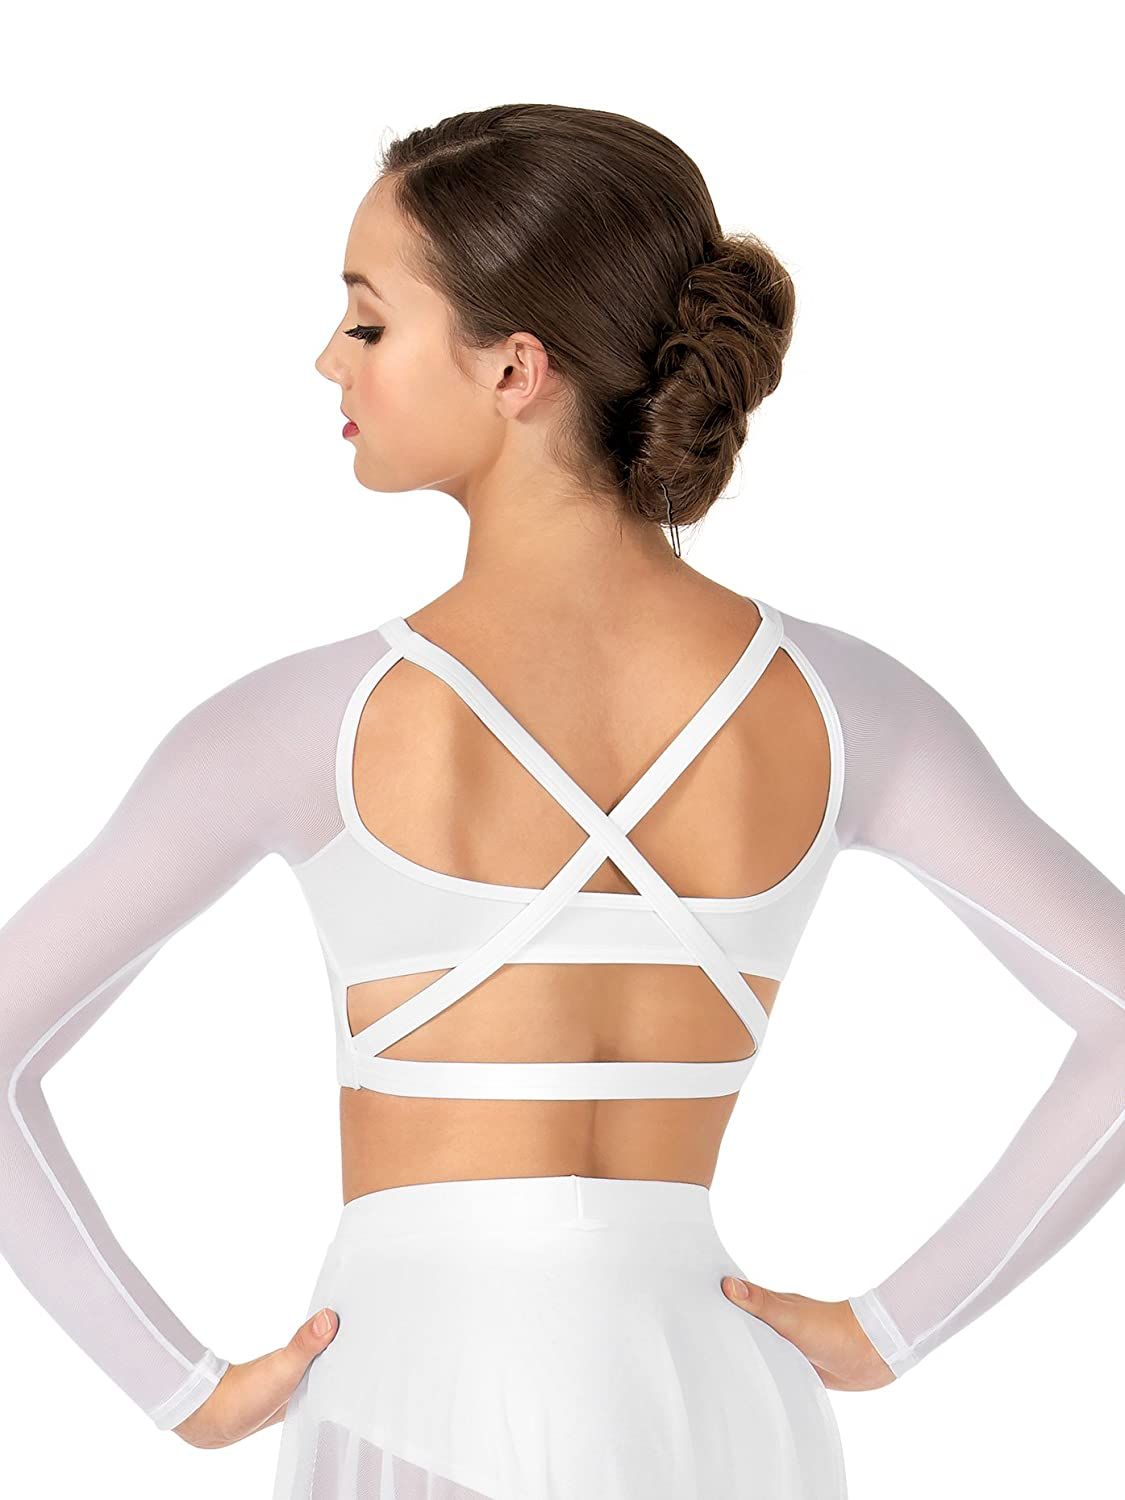 Body Wrappers Adult Long Sleeve X-Back Dance Crop Top, NL9020